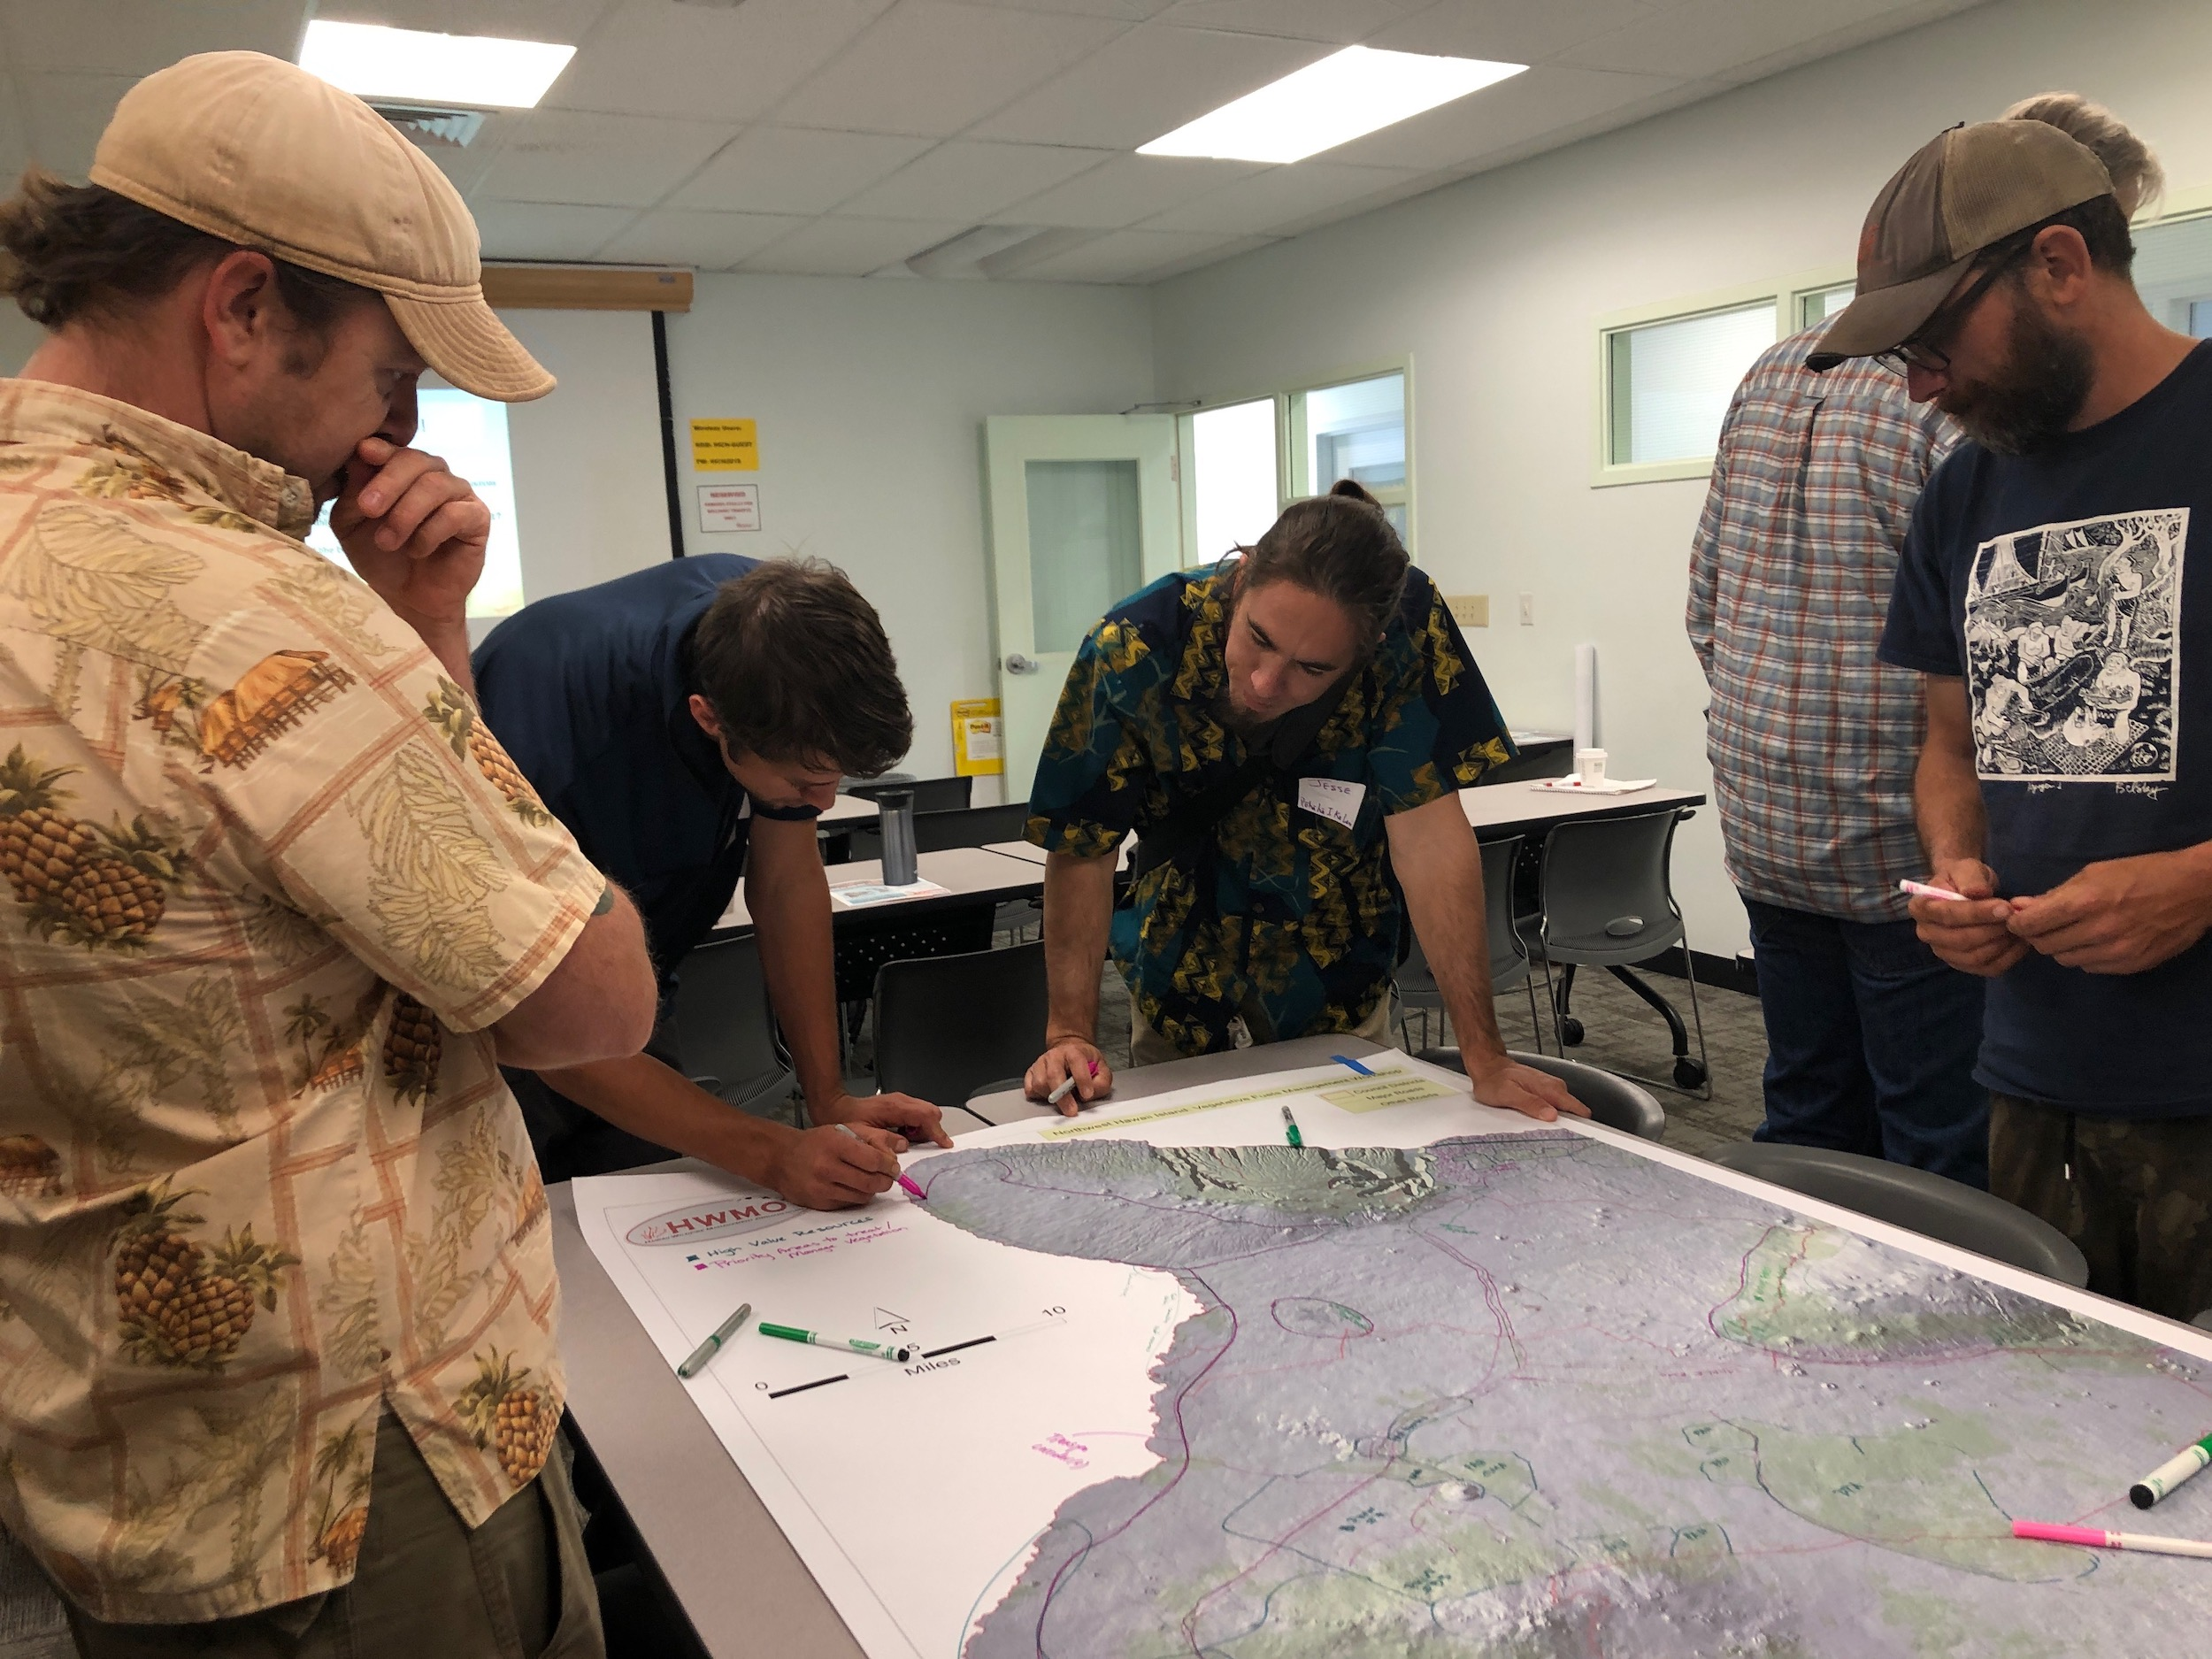 Hawaii Island Hilo Vegetative Fuels Management Collaborative Action Planning Workshop_2_22_2019_11.jpg